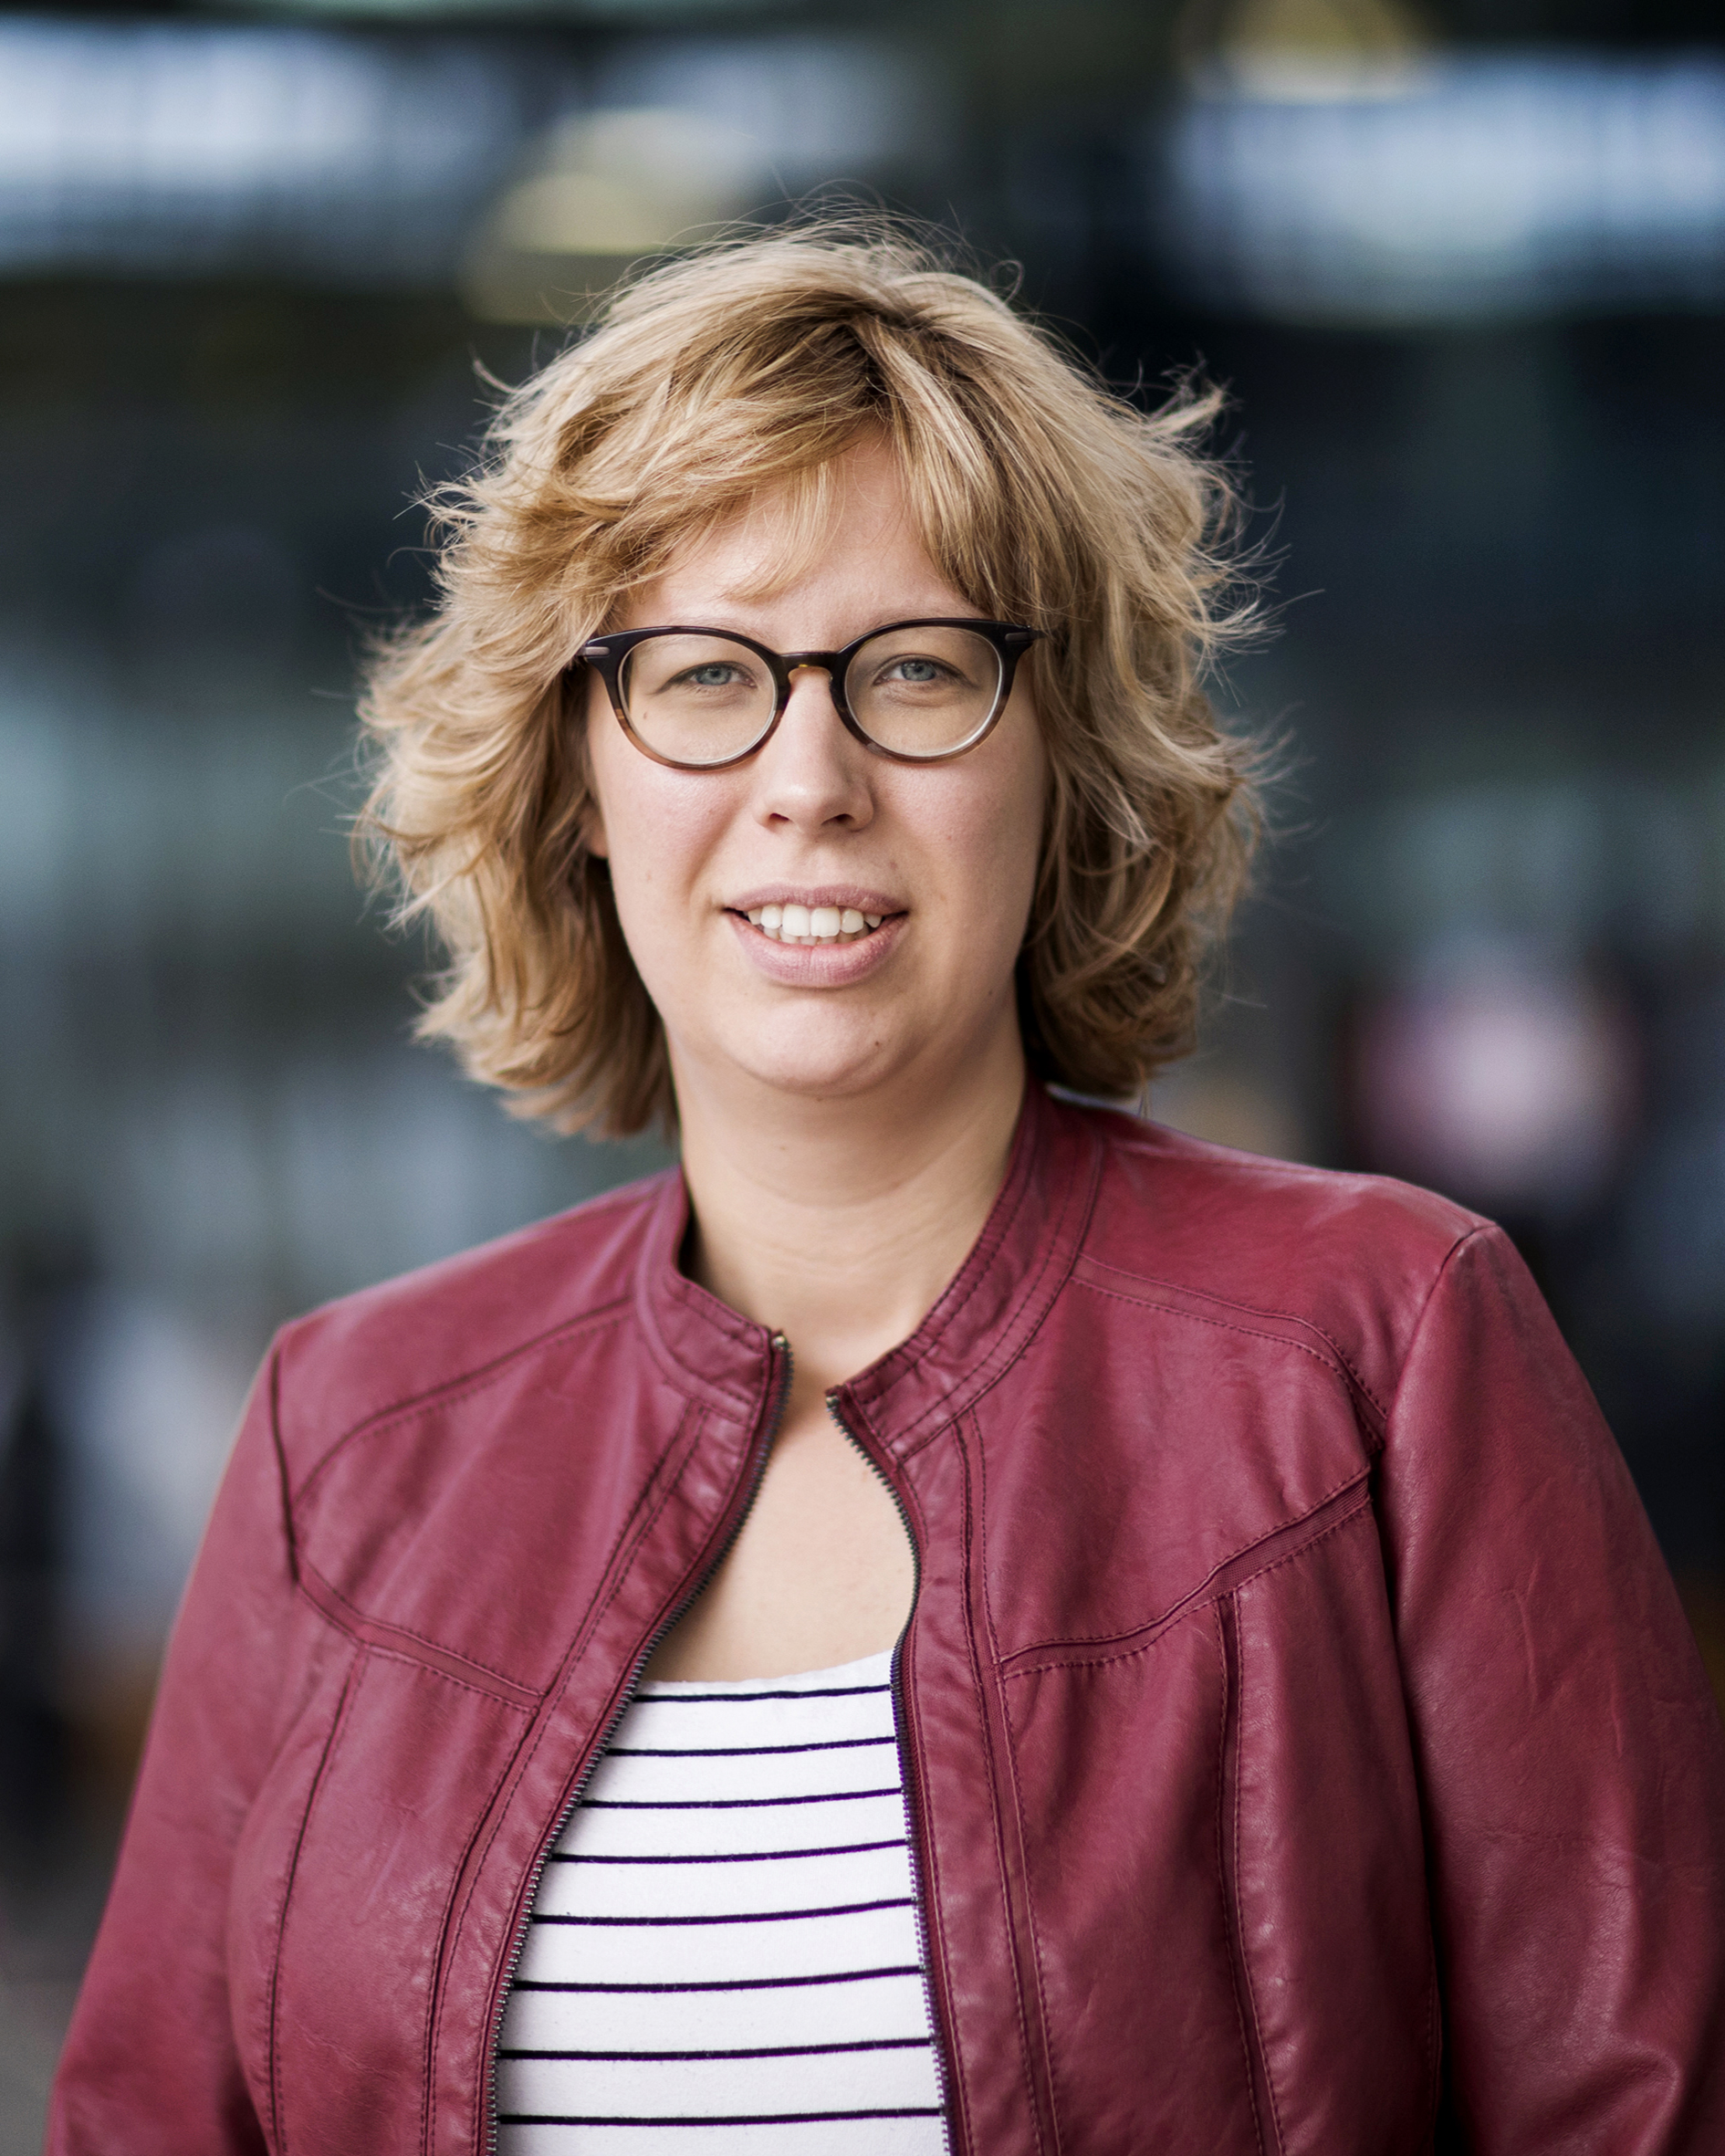 Photo of Sofie Haesaert